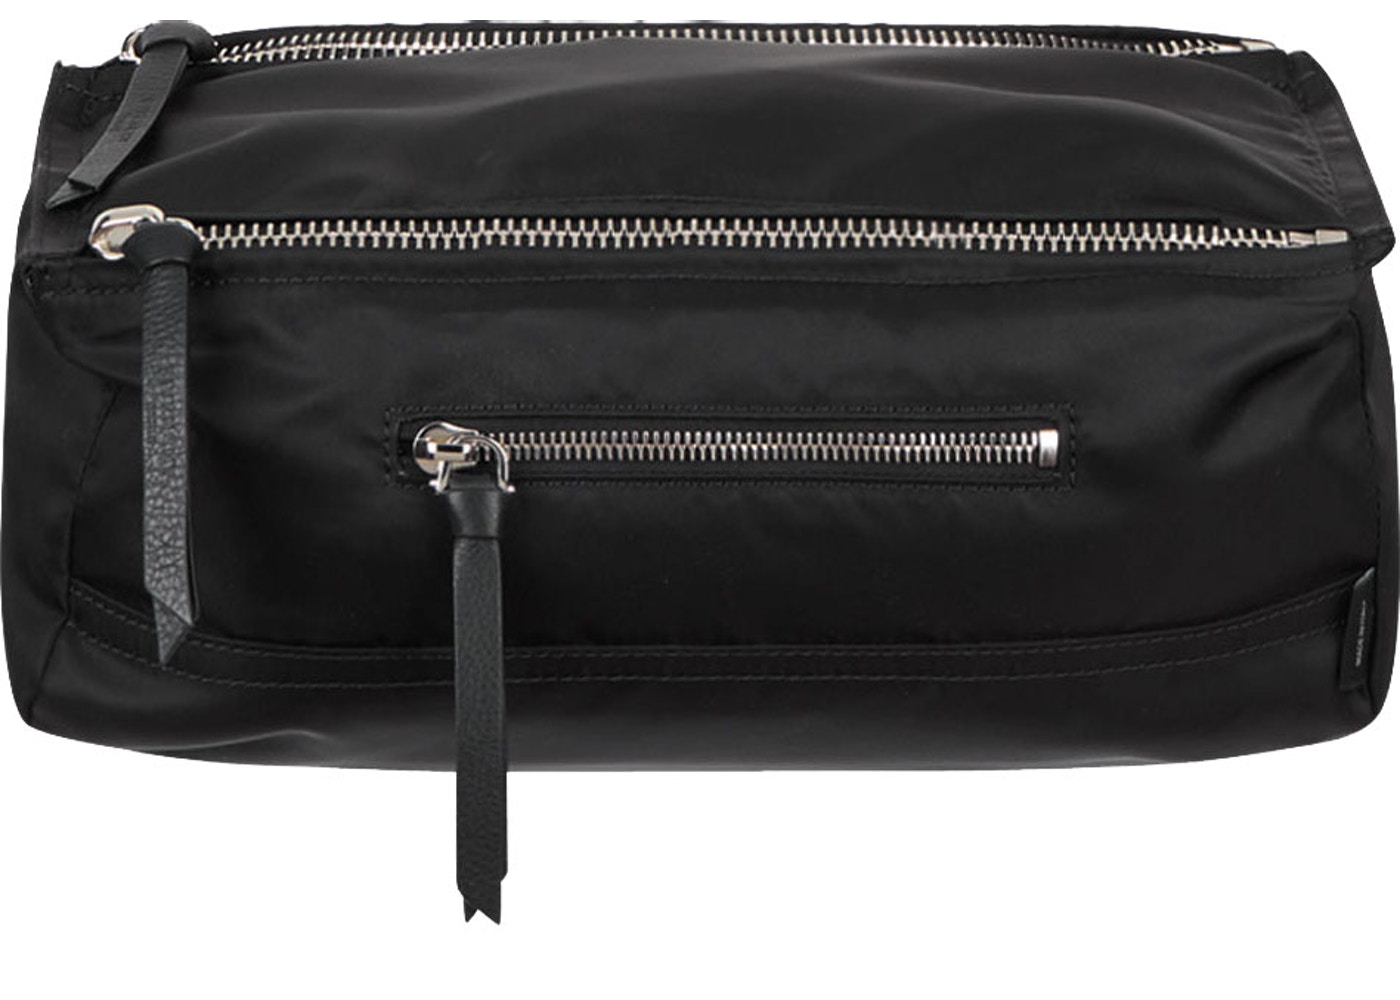 230366dd26 Givenchy Pandora 4G Bum Bag Black. Black